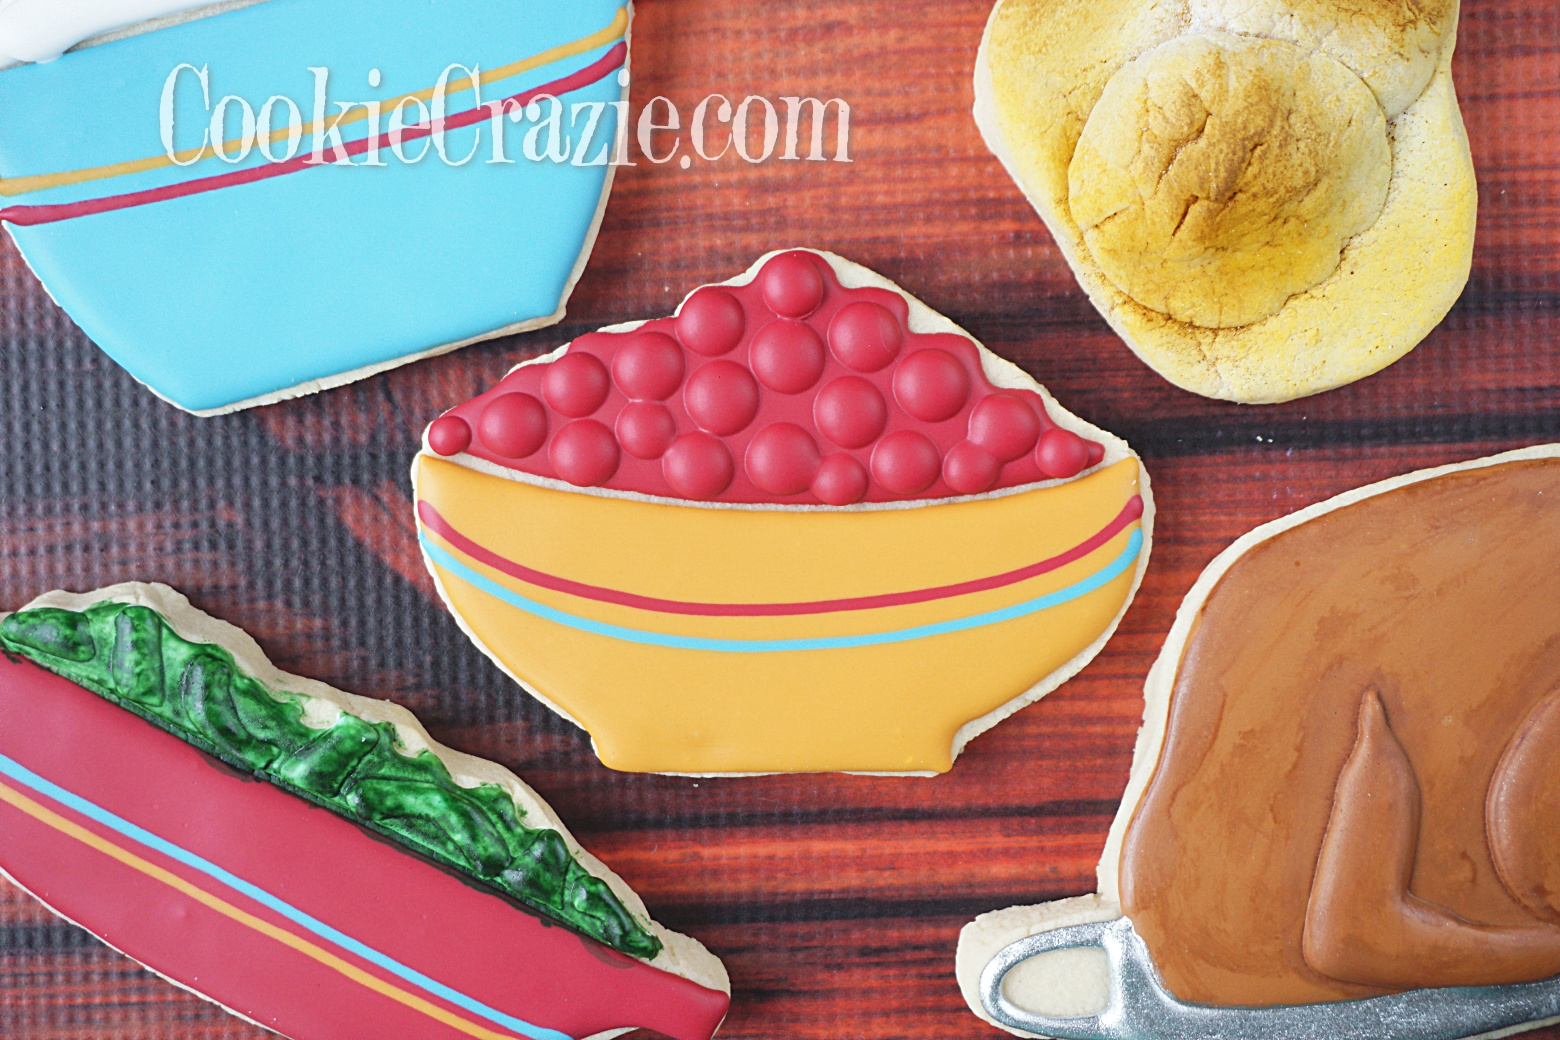 Bowl of Cranberries Decorated Sugar Cookie YouTube video  HERE